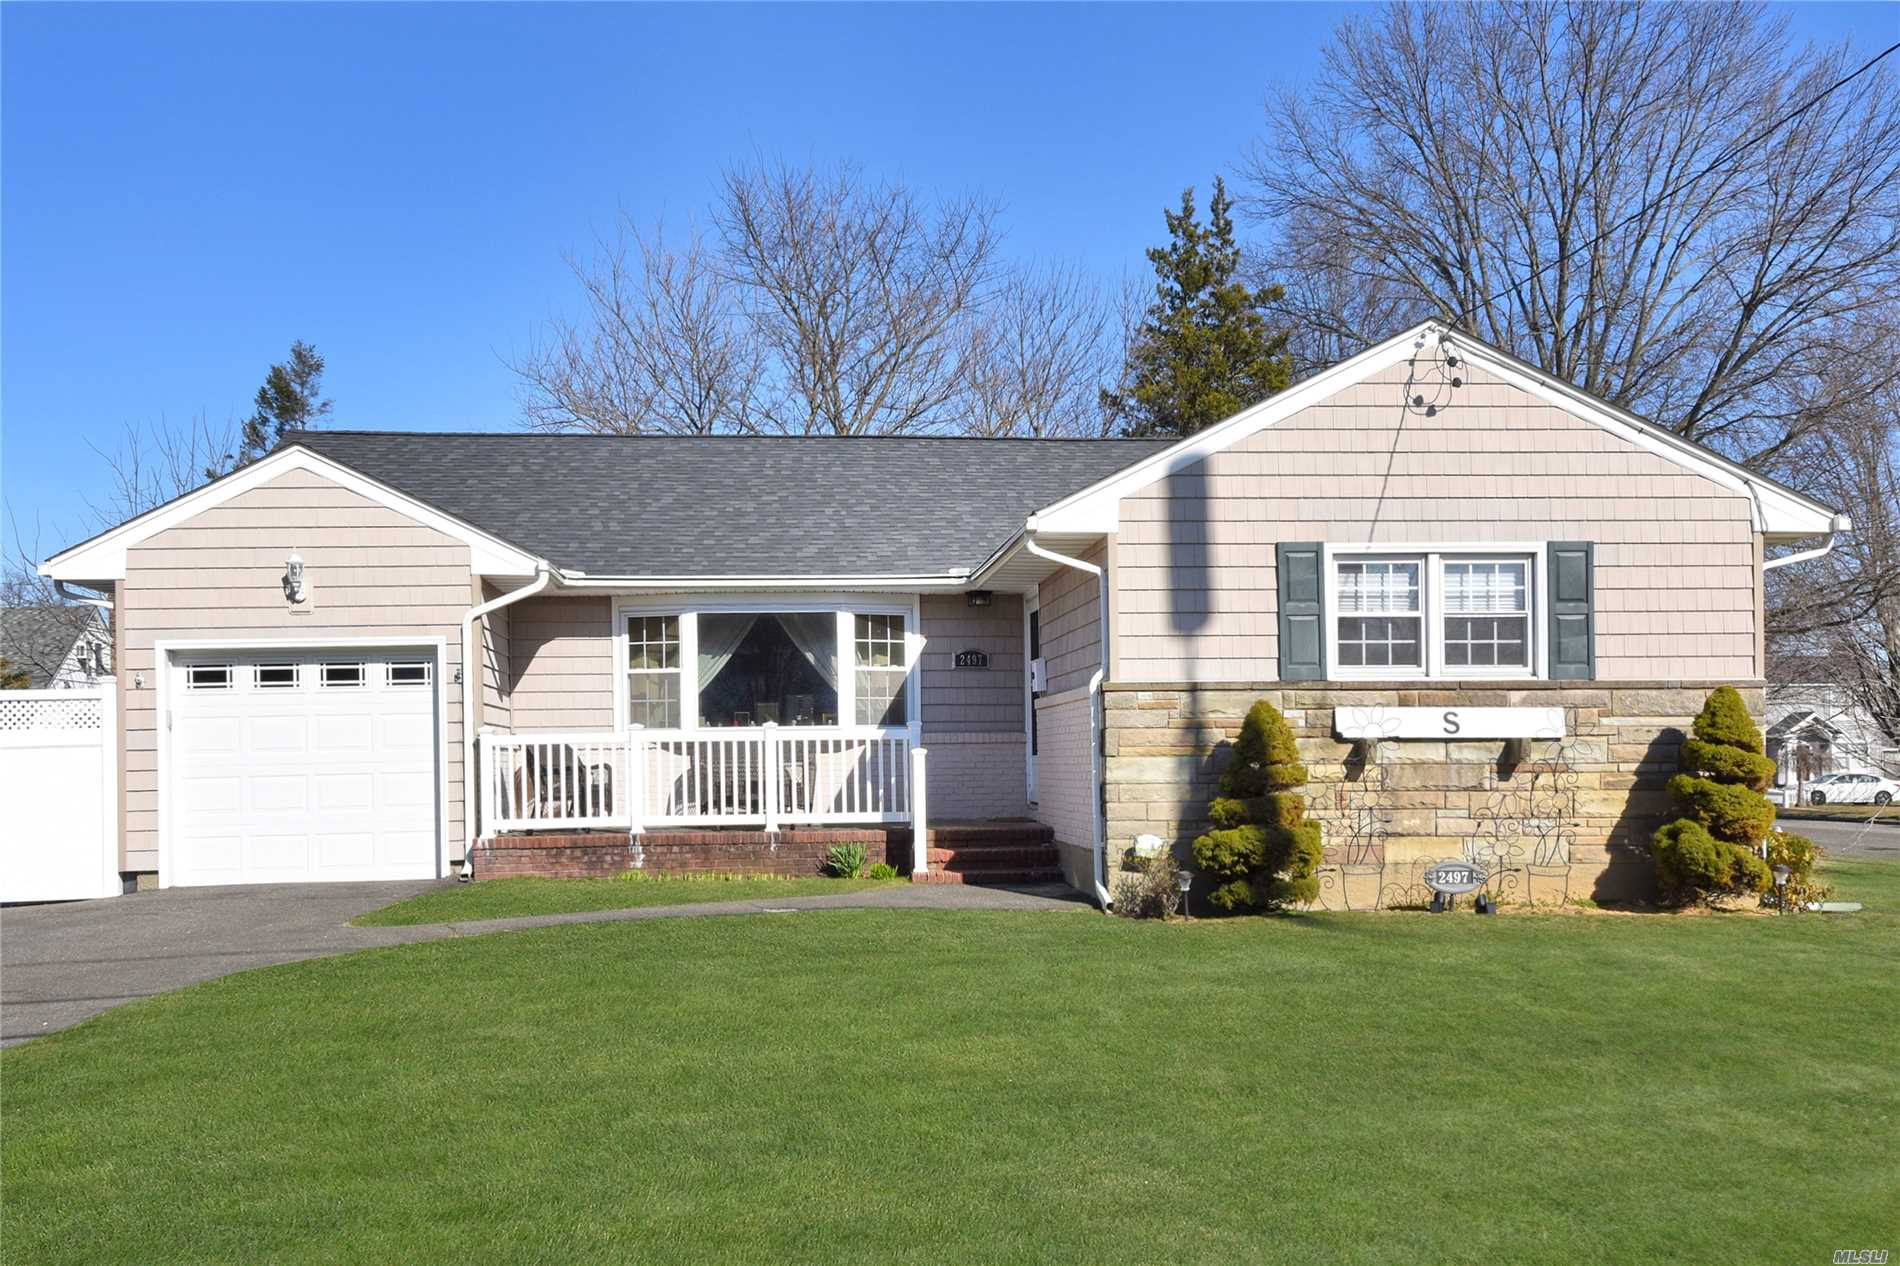 Beautiful Terrace Ranch. This charming 3 Bedroom, 2 Bathroom home includes a Master Ensuite with updated bathroom. Open concept renovated kitchen & dining room with sun room. Hardwood floors throughout. Updated finished spacious basement with utility room & laundry room. 100x100 lot, park-like backyard with patio and plenty of space for entertaining. Close to All.